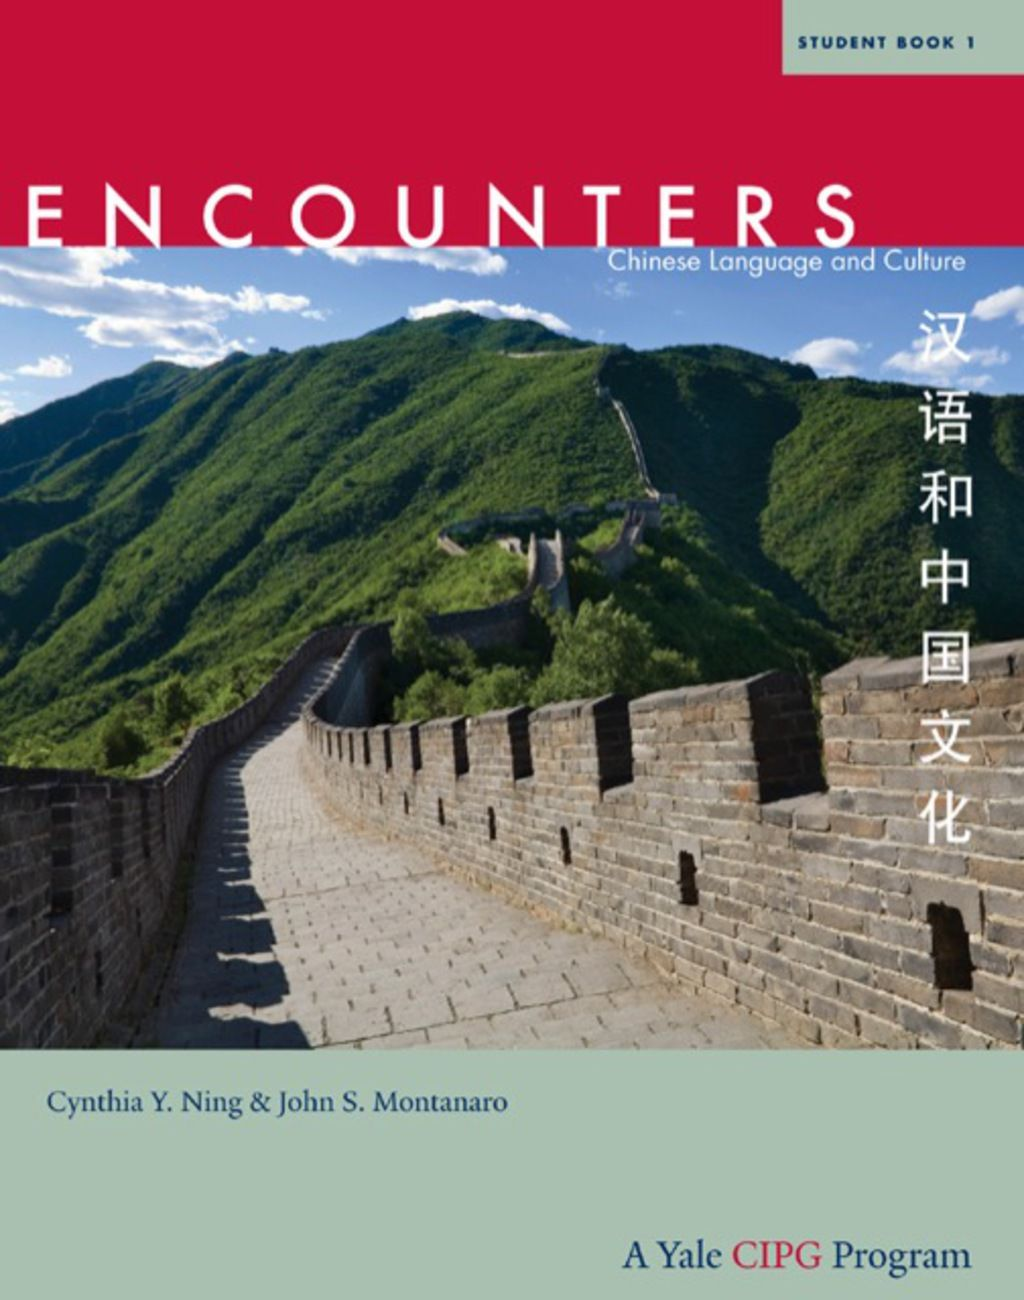 Encounters Chinese Language And Culture Student Book 1 Ebook In 2020 Chinese Language Language Student